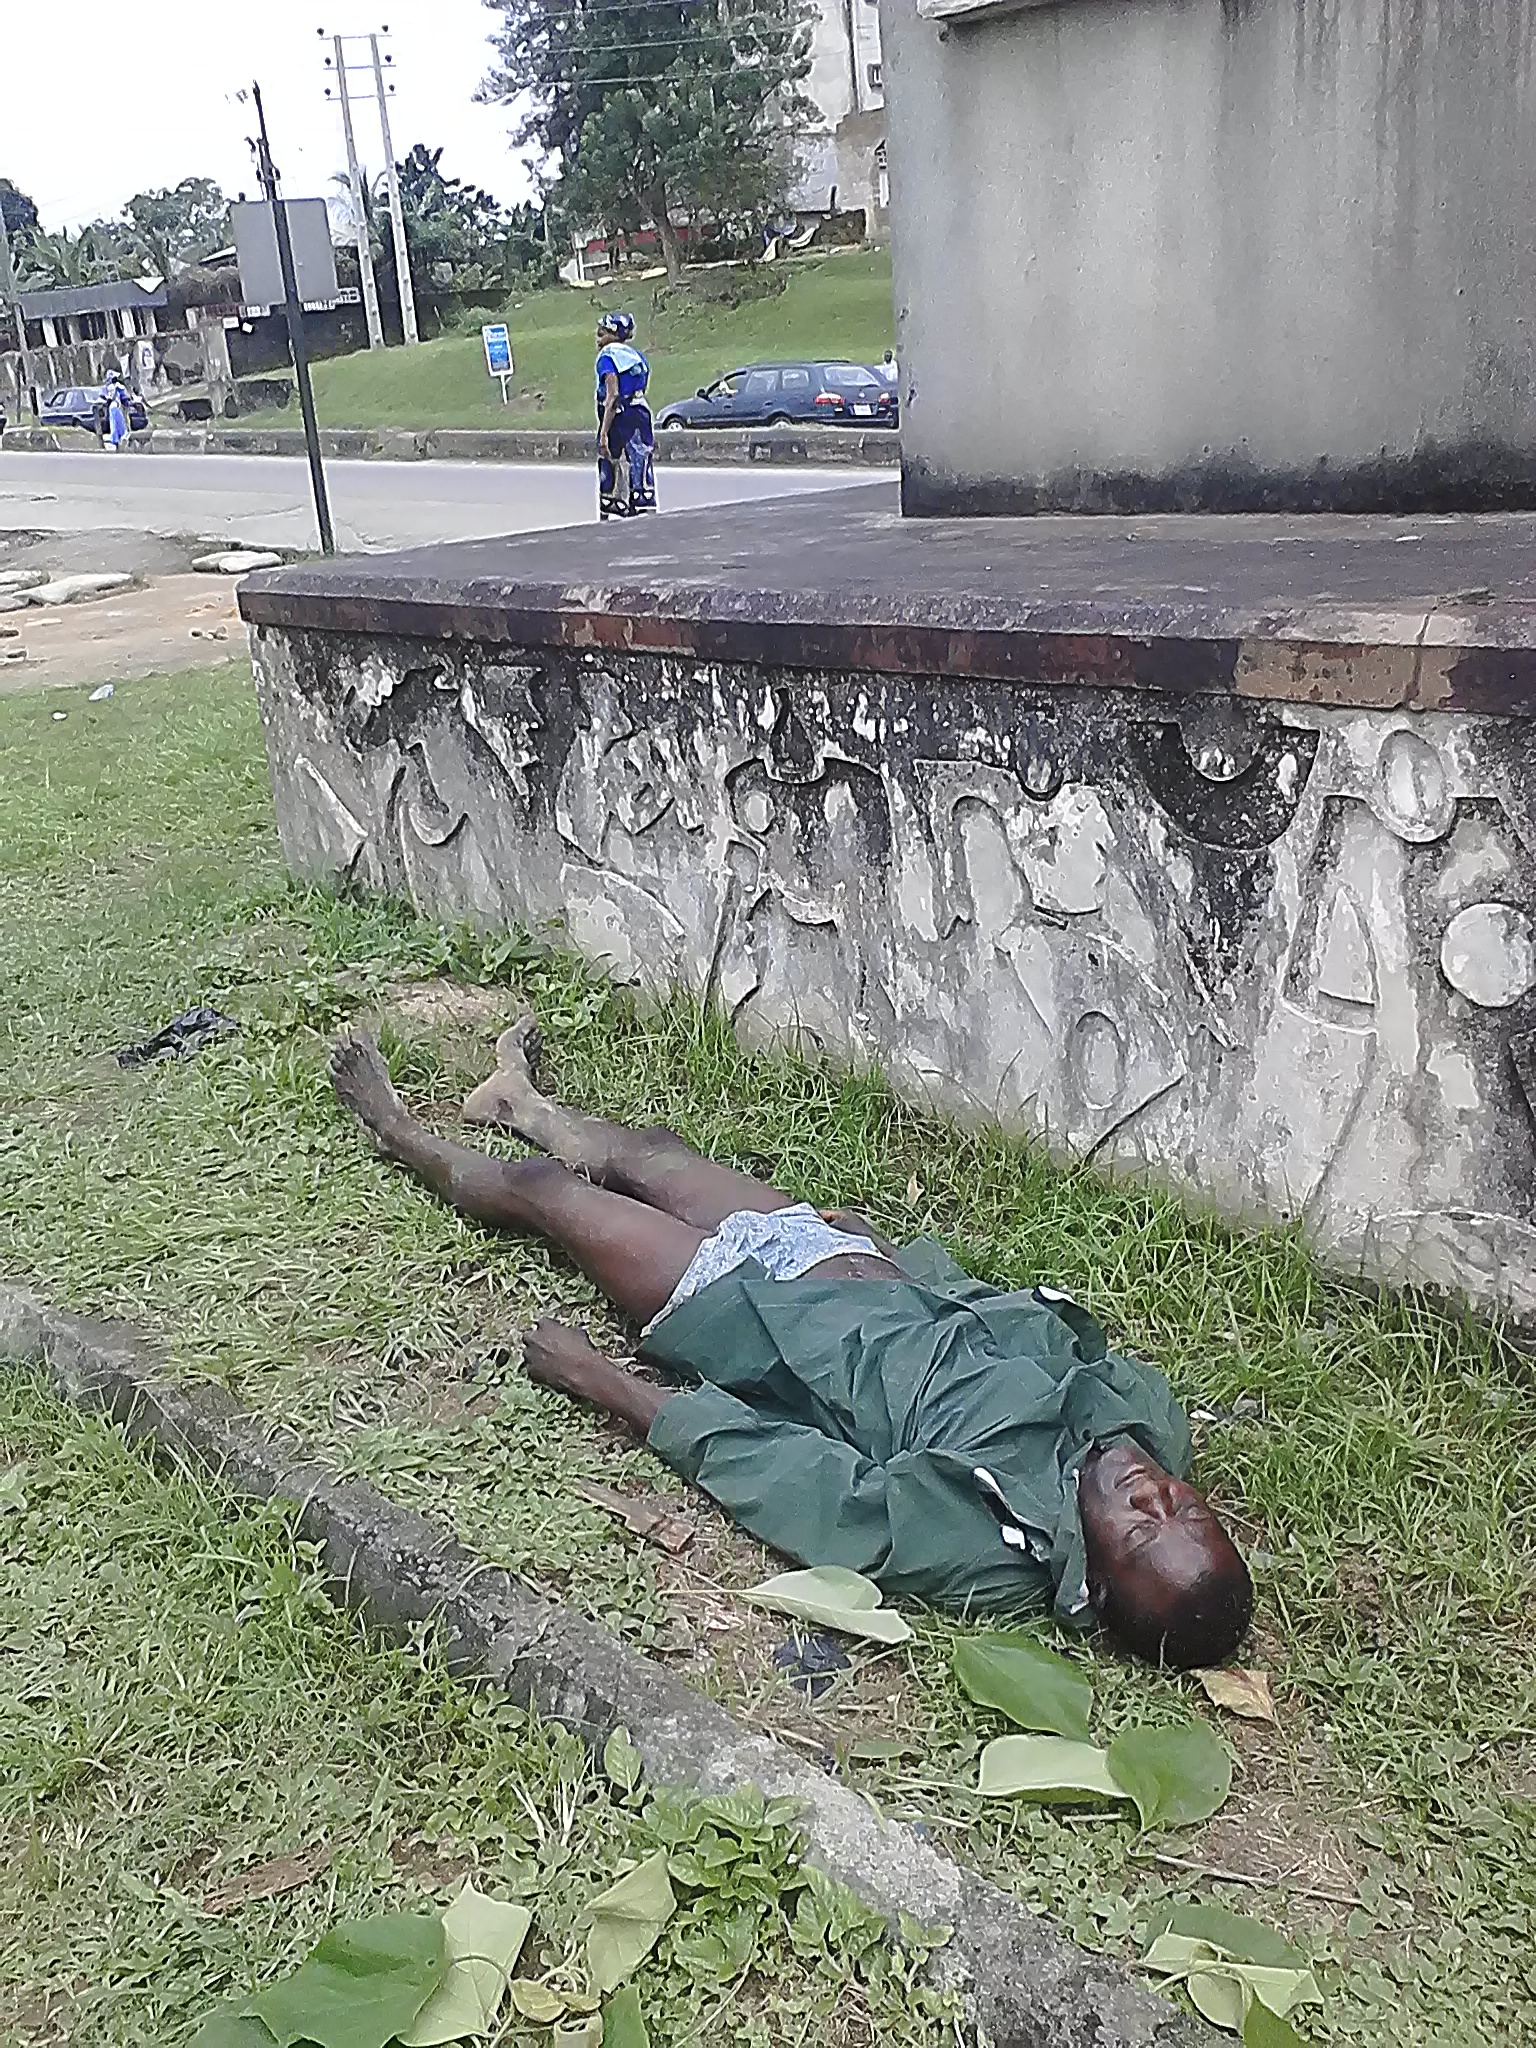 Man Killed And Dumped By Calabar Gate